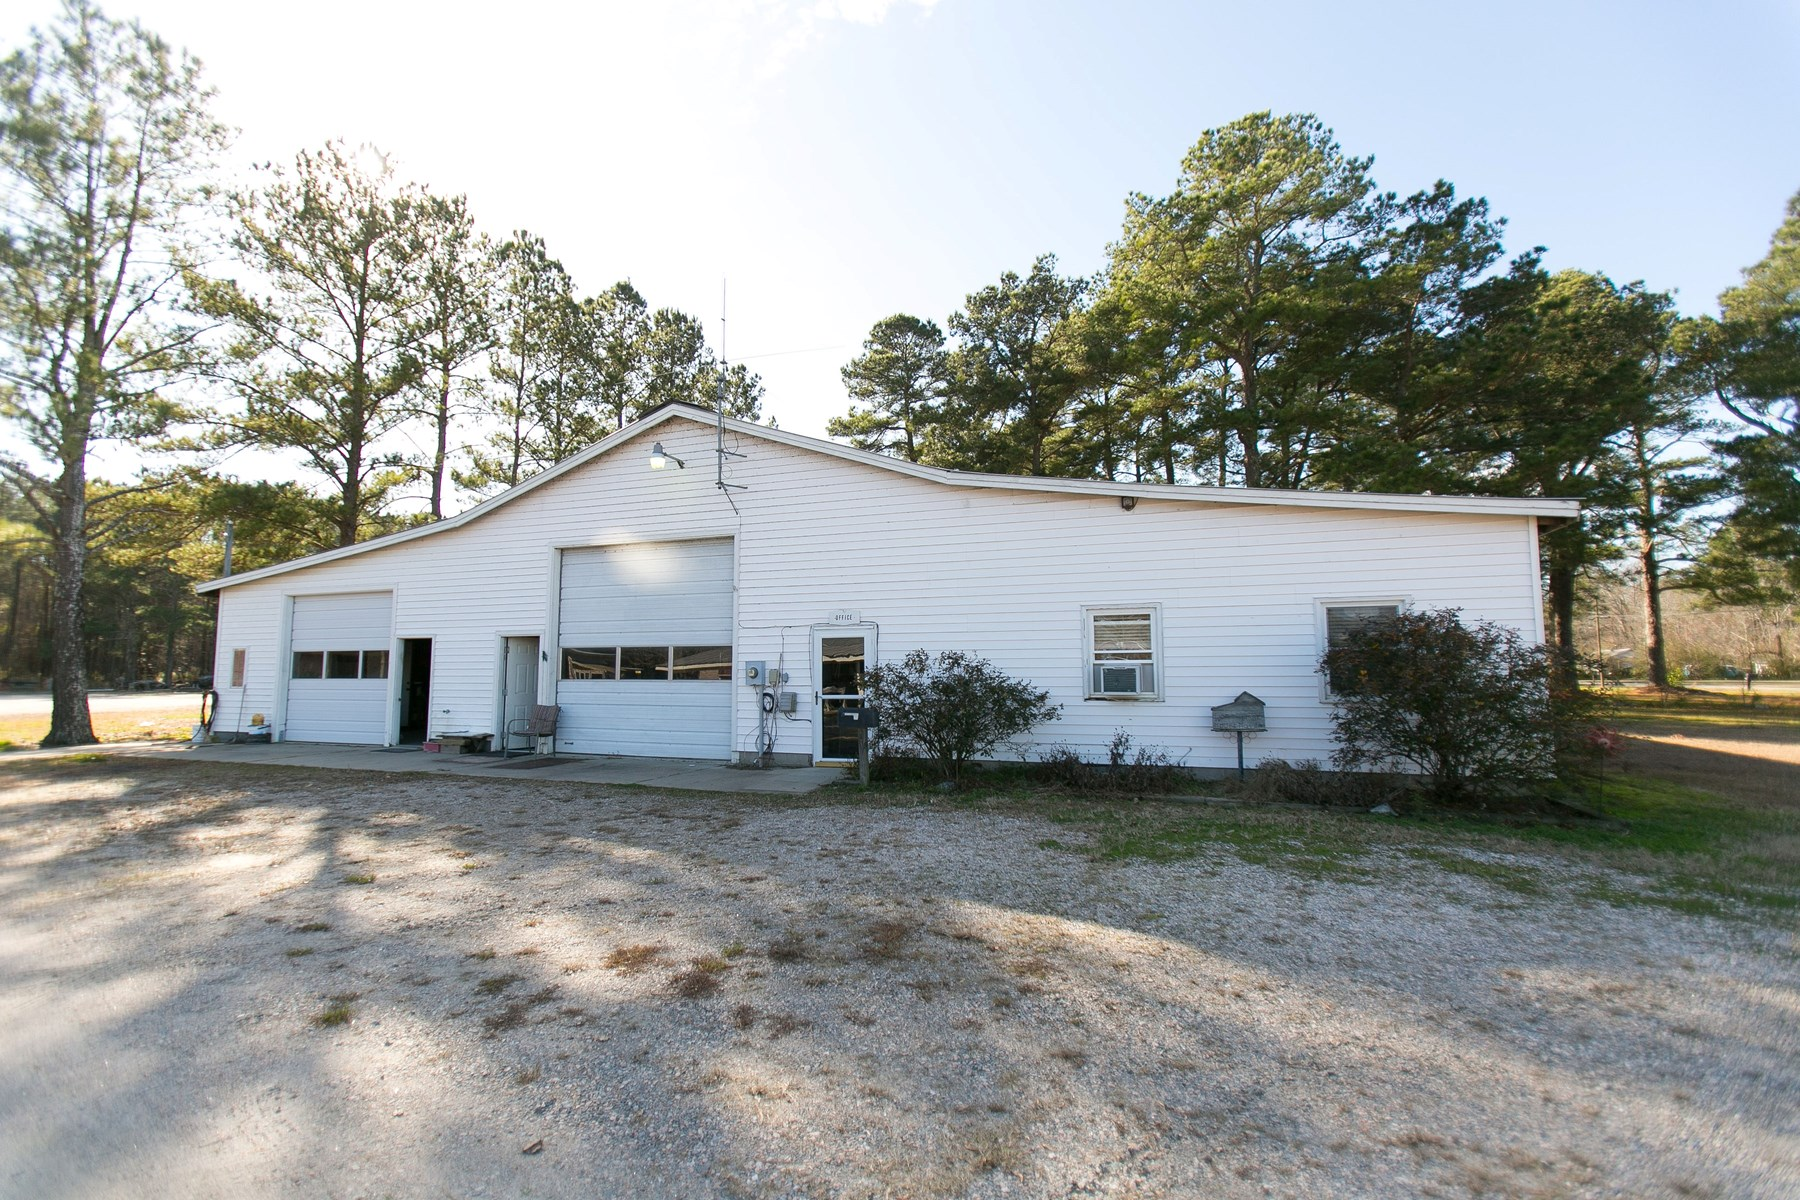 EDENTON, NC OFFICE, WORKSHOP, OUTBUILDINGS ON 4.52 ACRES